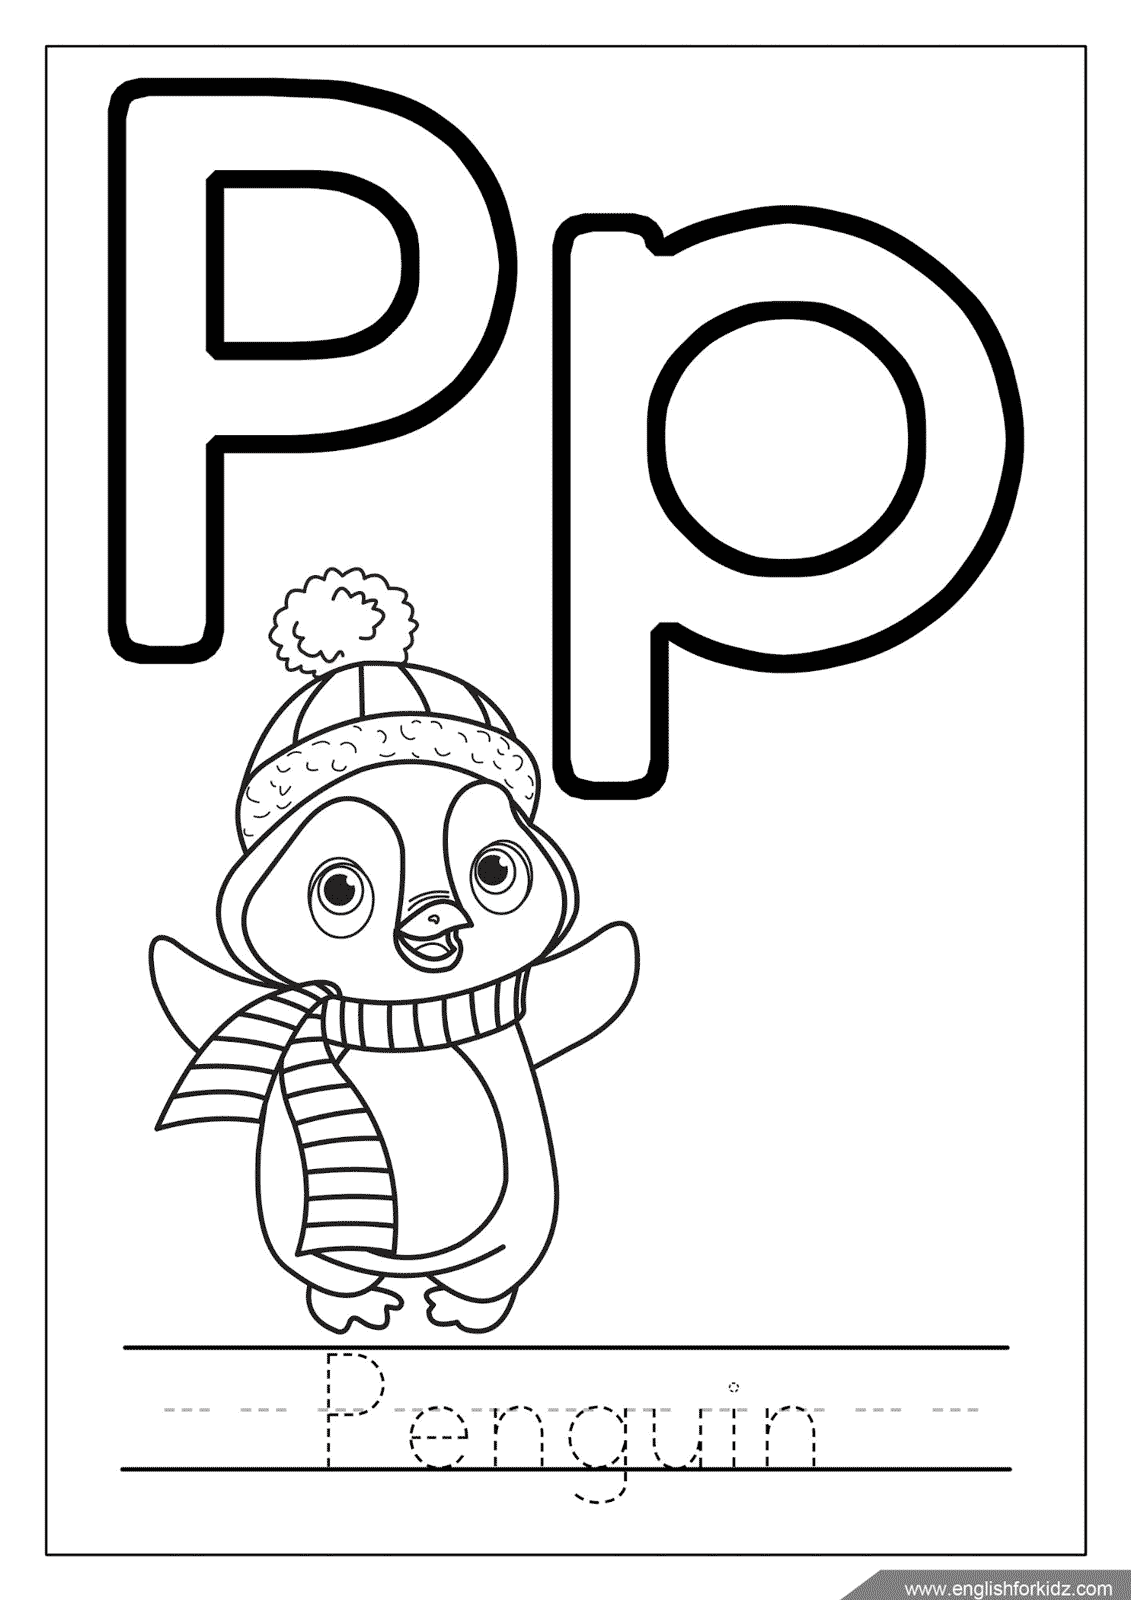 Letter P Worksheets, Flash Cards, Coloring Pages